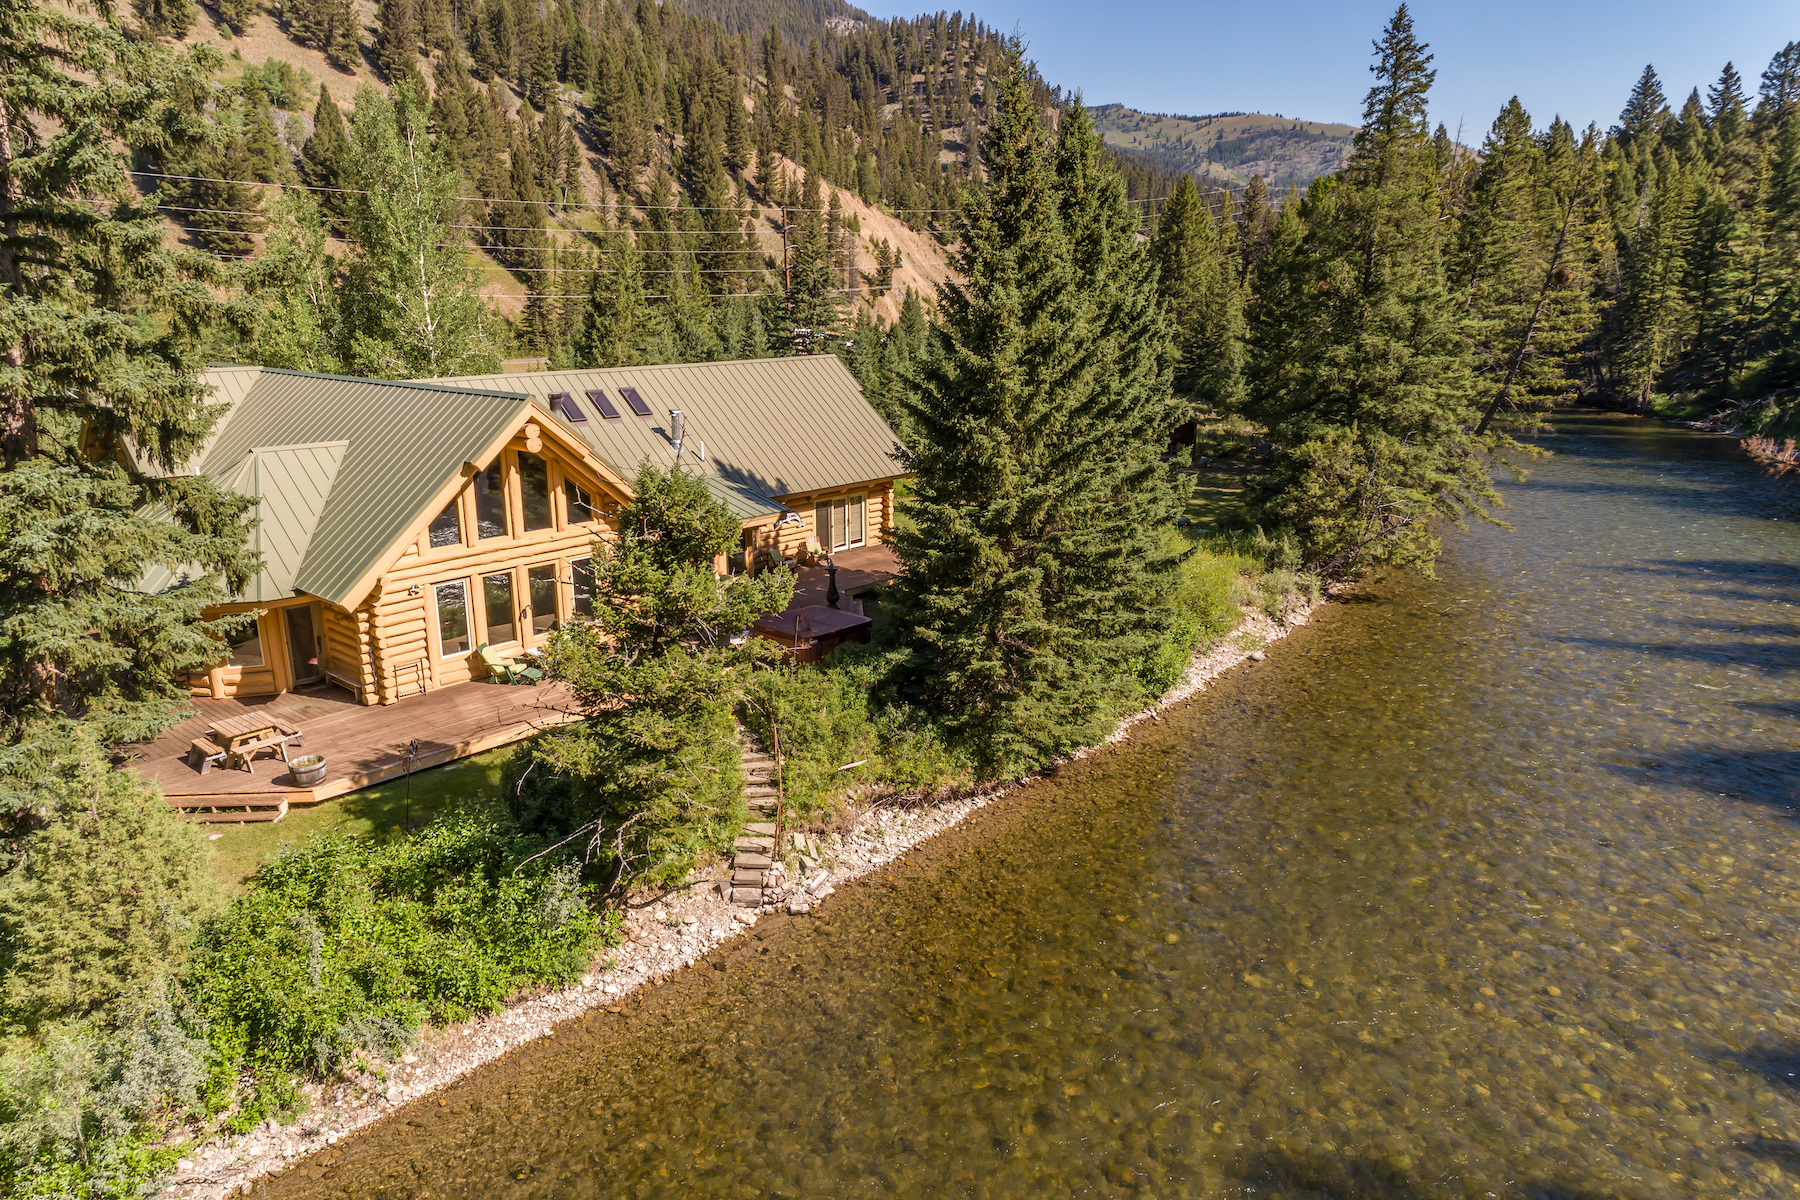 Single Family Homes for Sale at Gallatin River Retreat 49622 Gallatin Road Big Sky, Montana 59730 United States